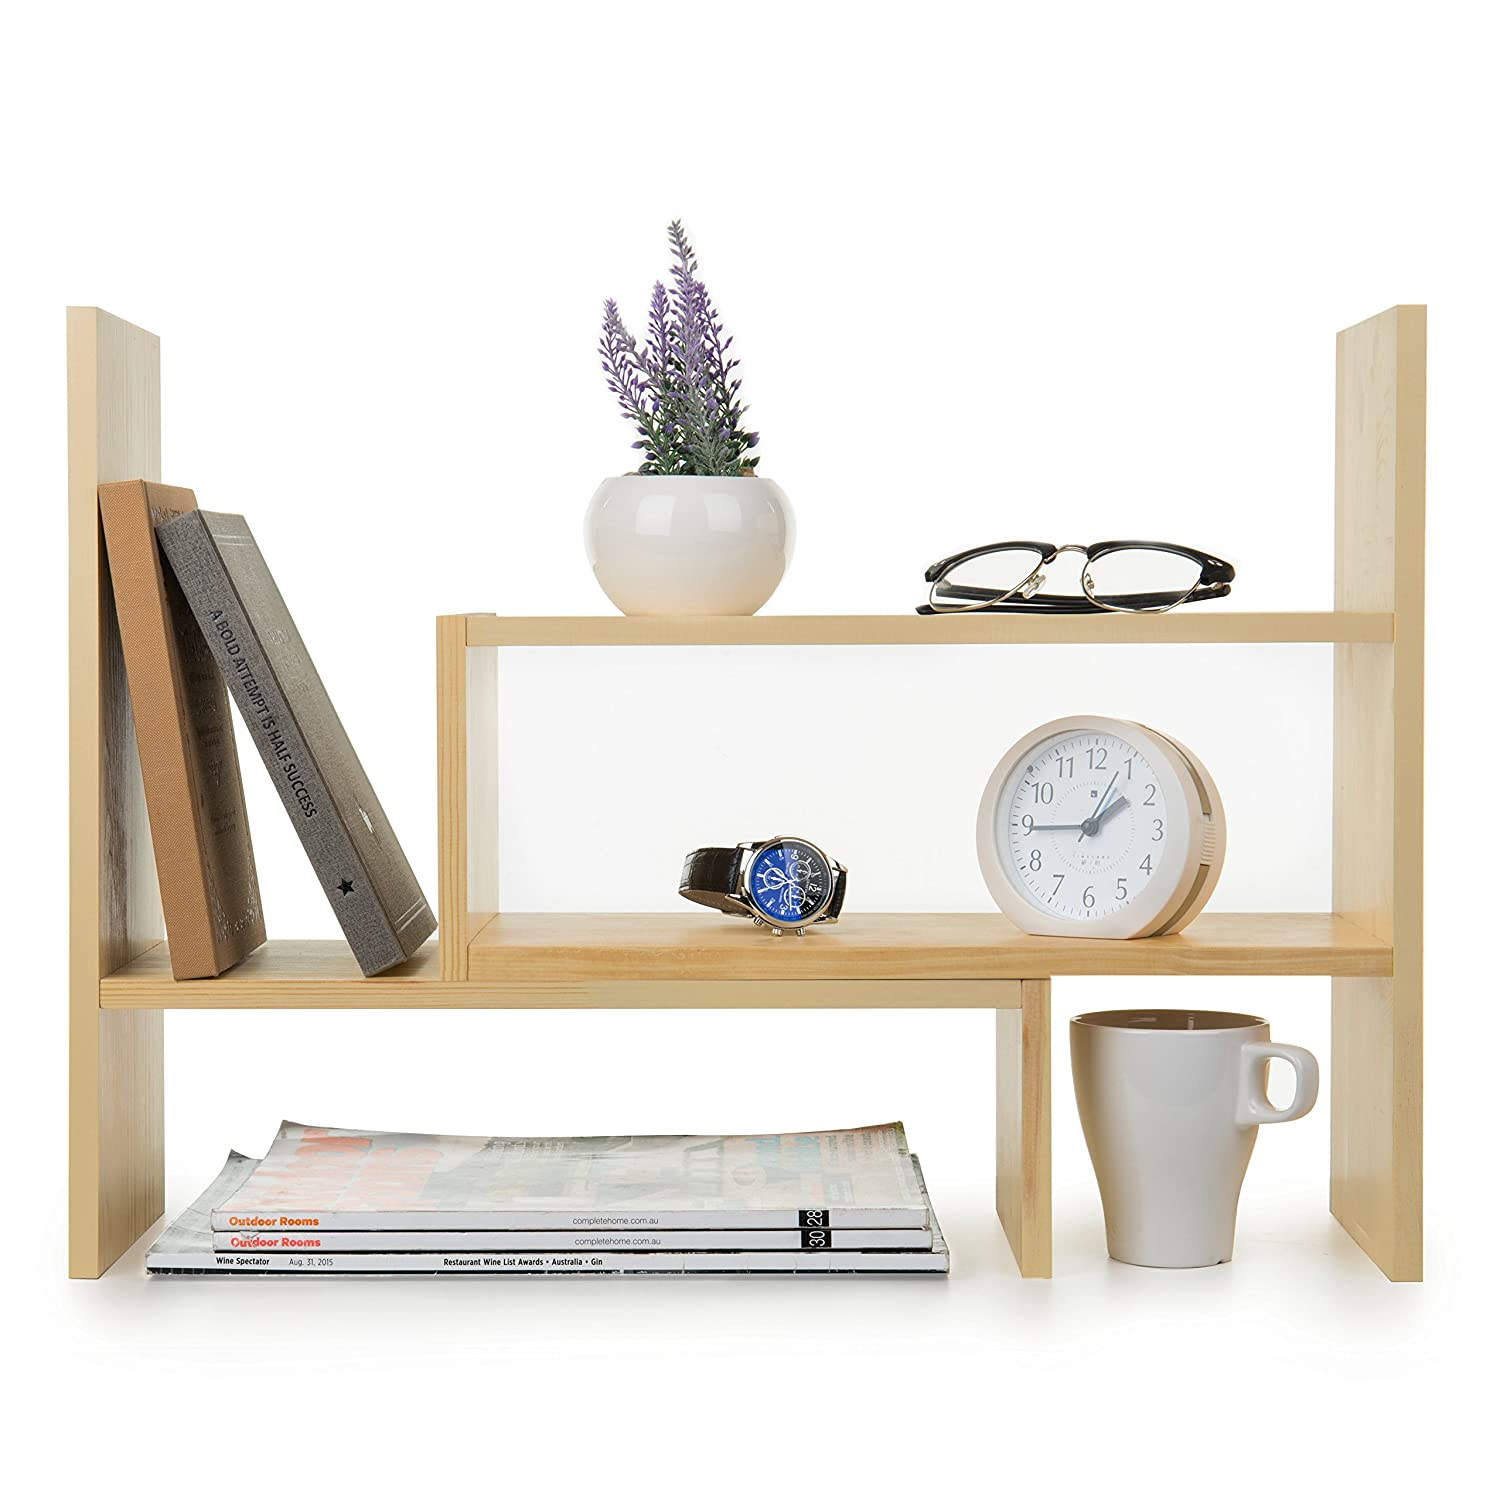 Adjustable Natural Wood Desktop Storage Organizer Display Shelf Rack, Counter Top Bookcase, Beige